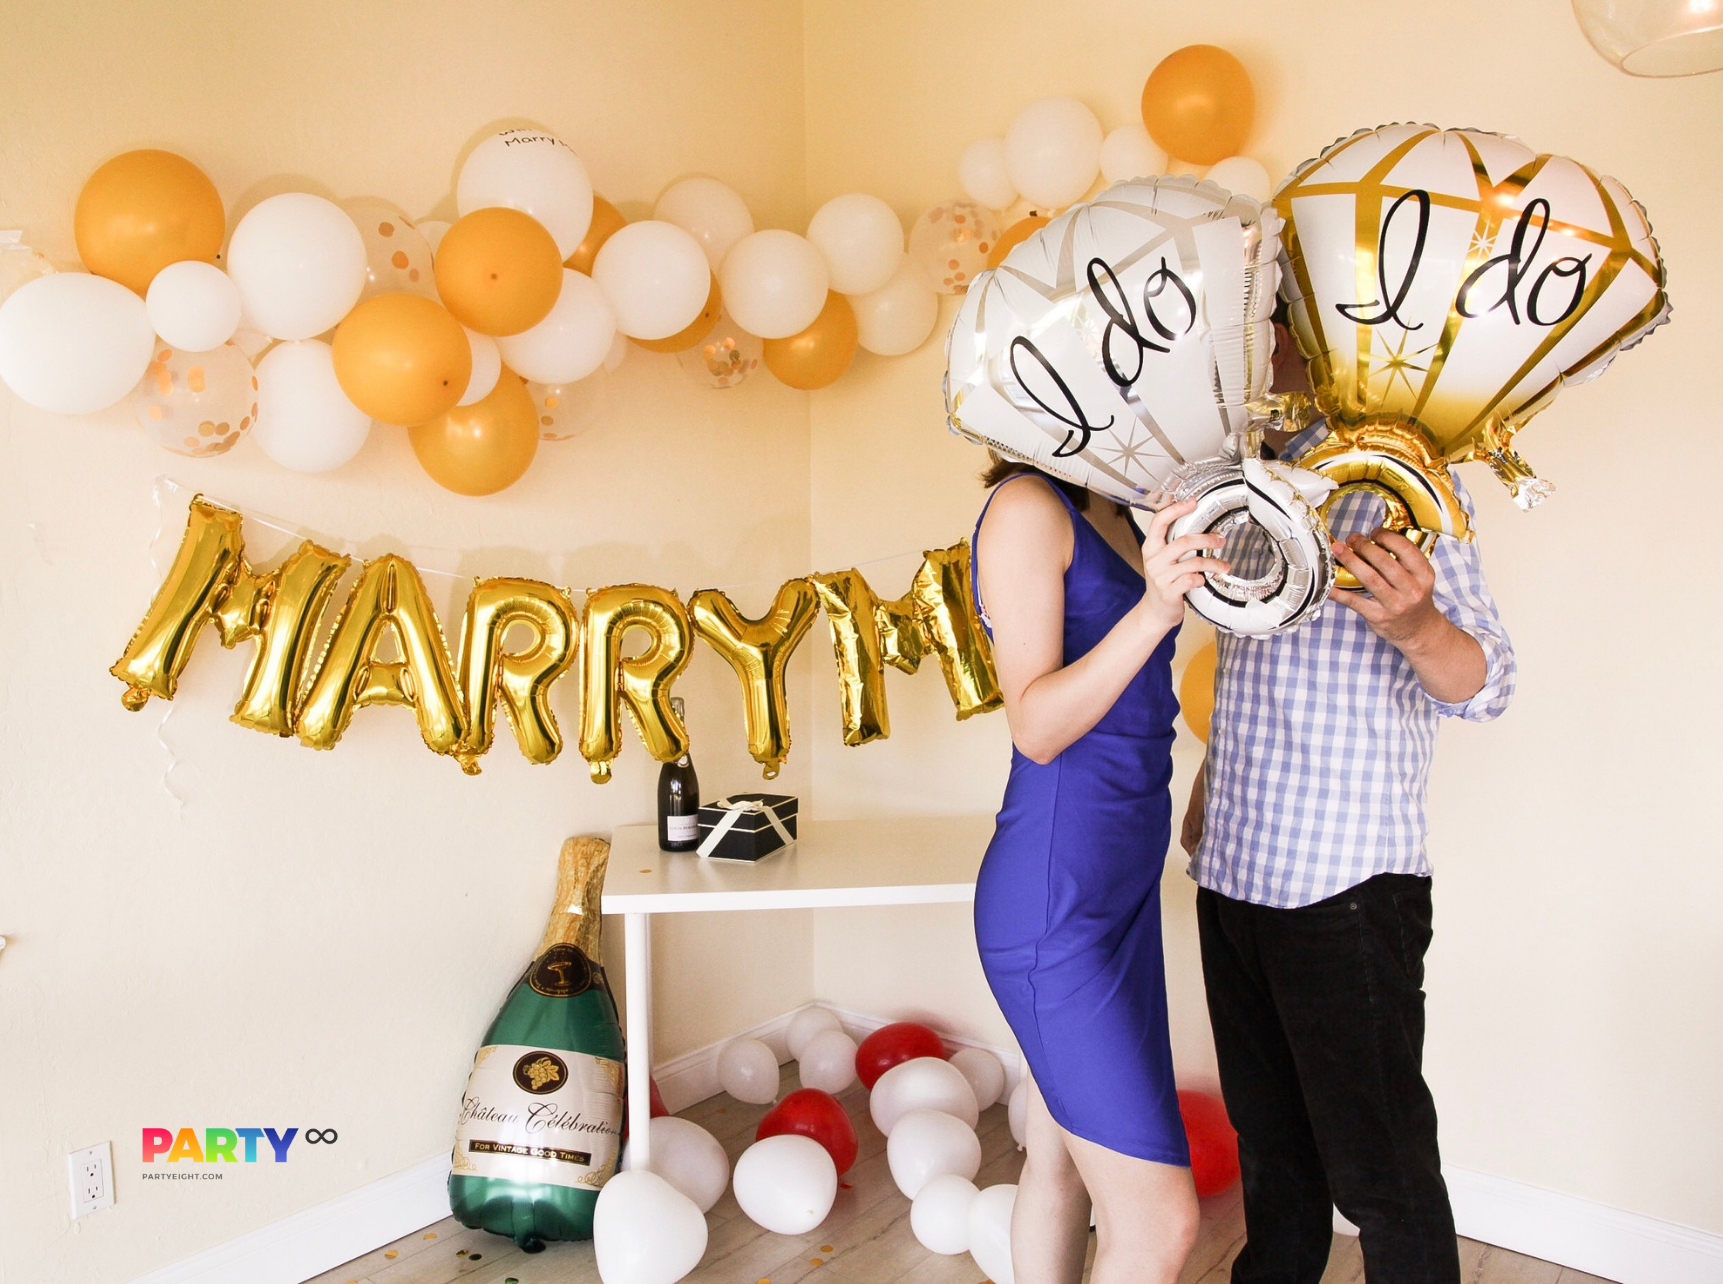 Balloons Banners Engaged Engagement Party Supplies Tableware OMG Decorations